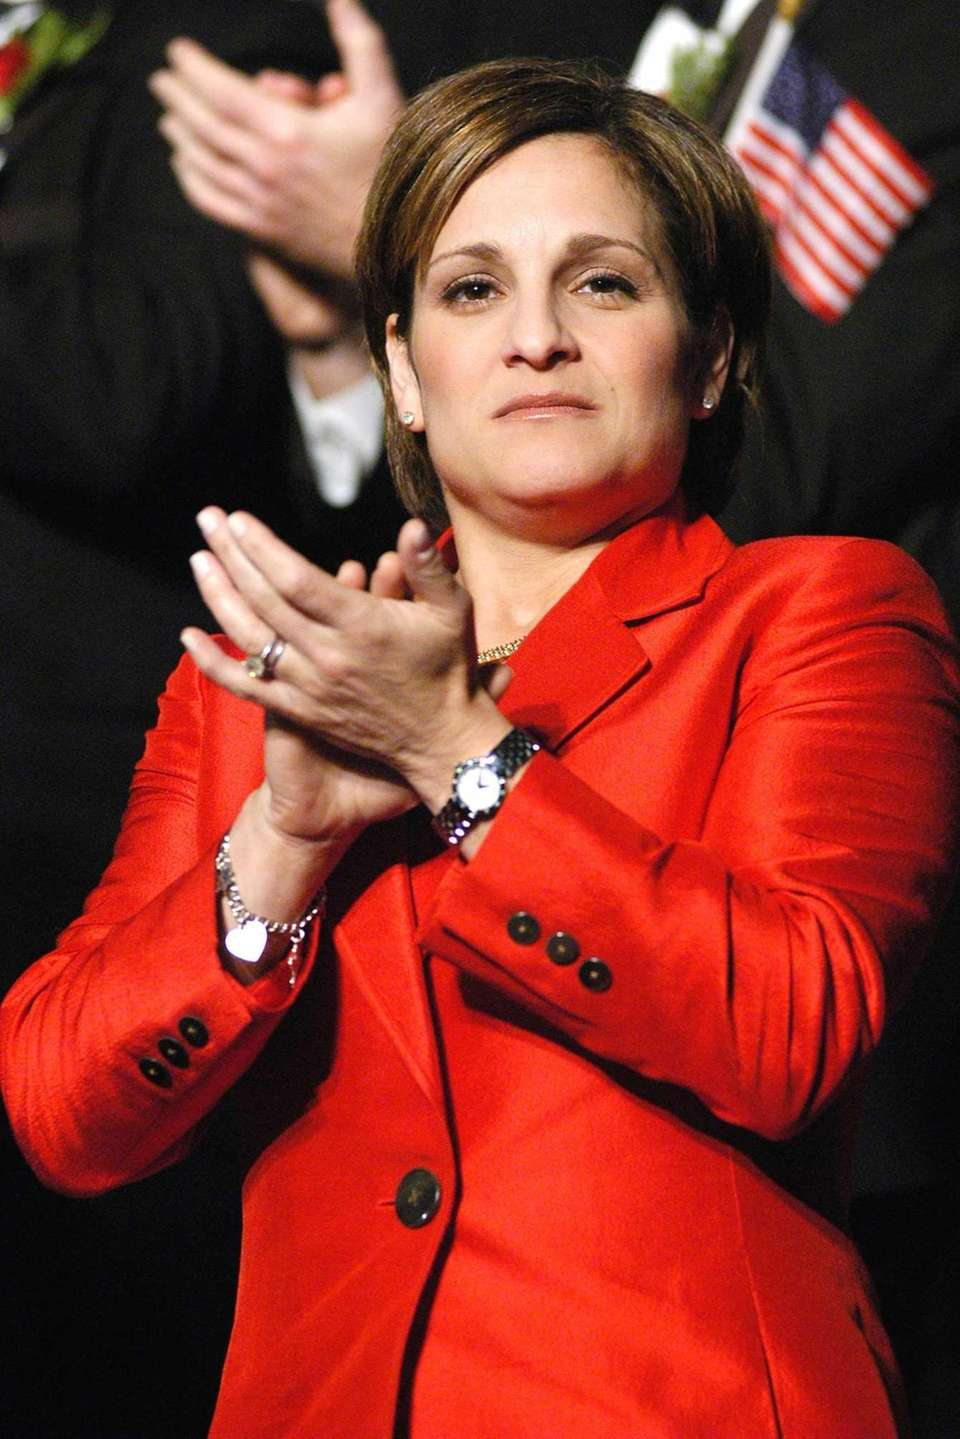 Mary Lou Retton has appeared in several commercials,